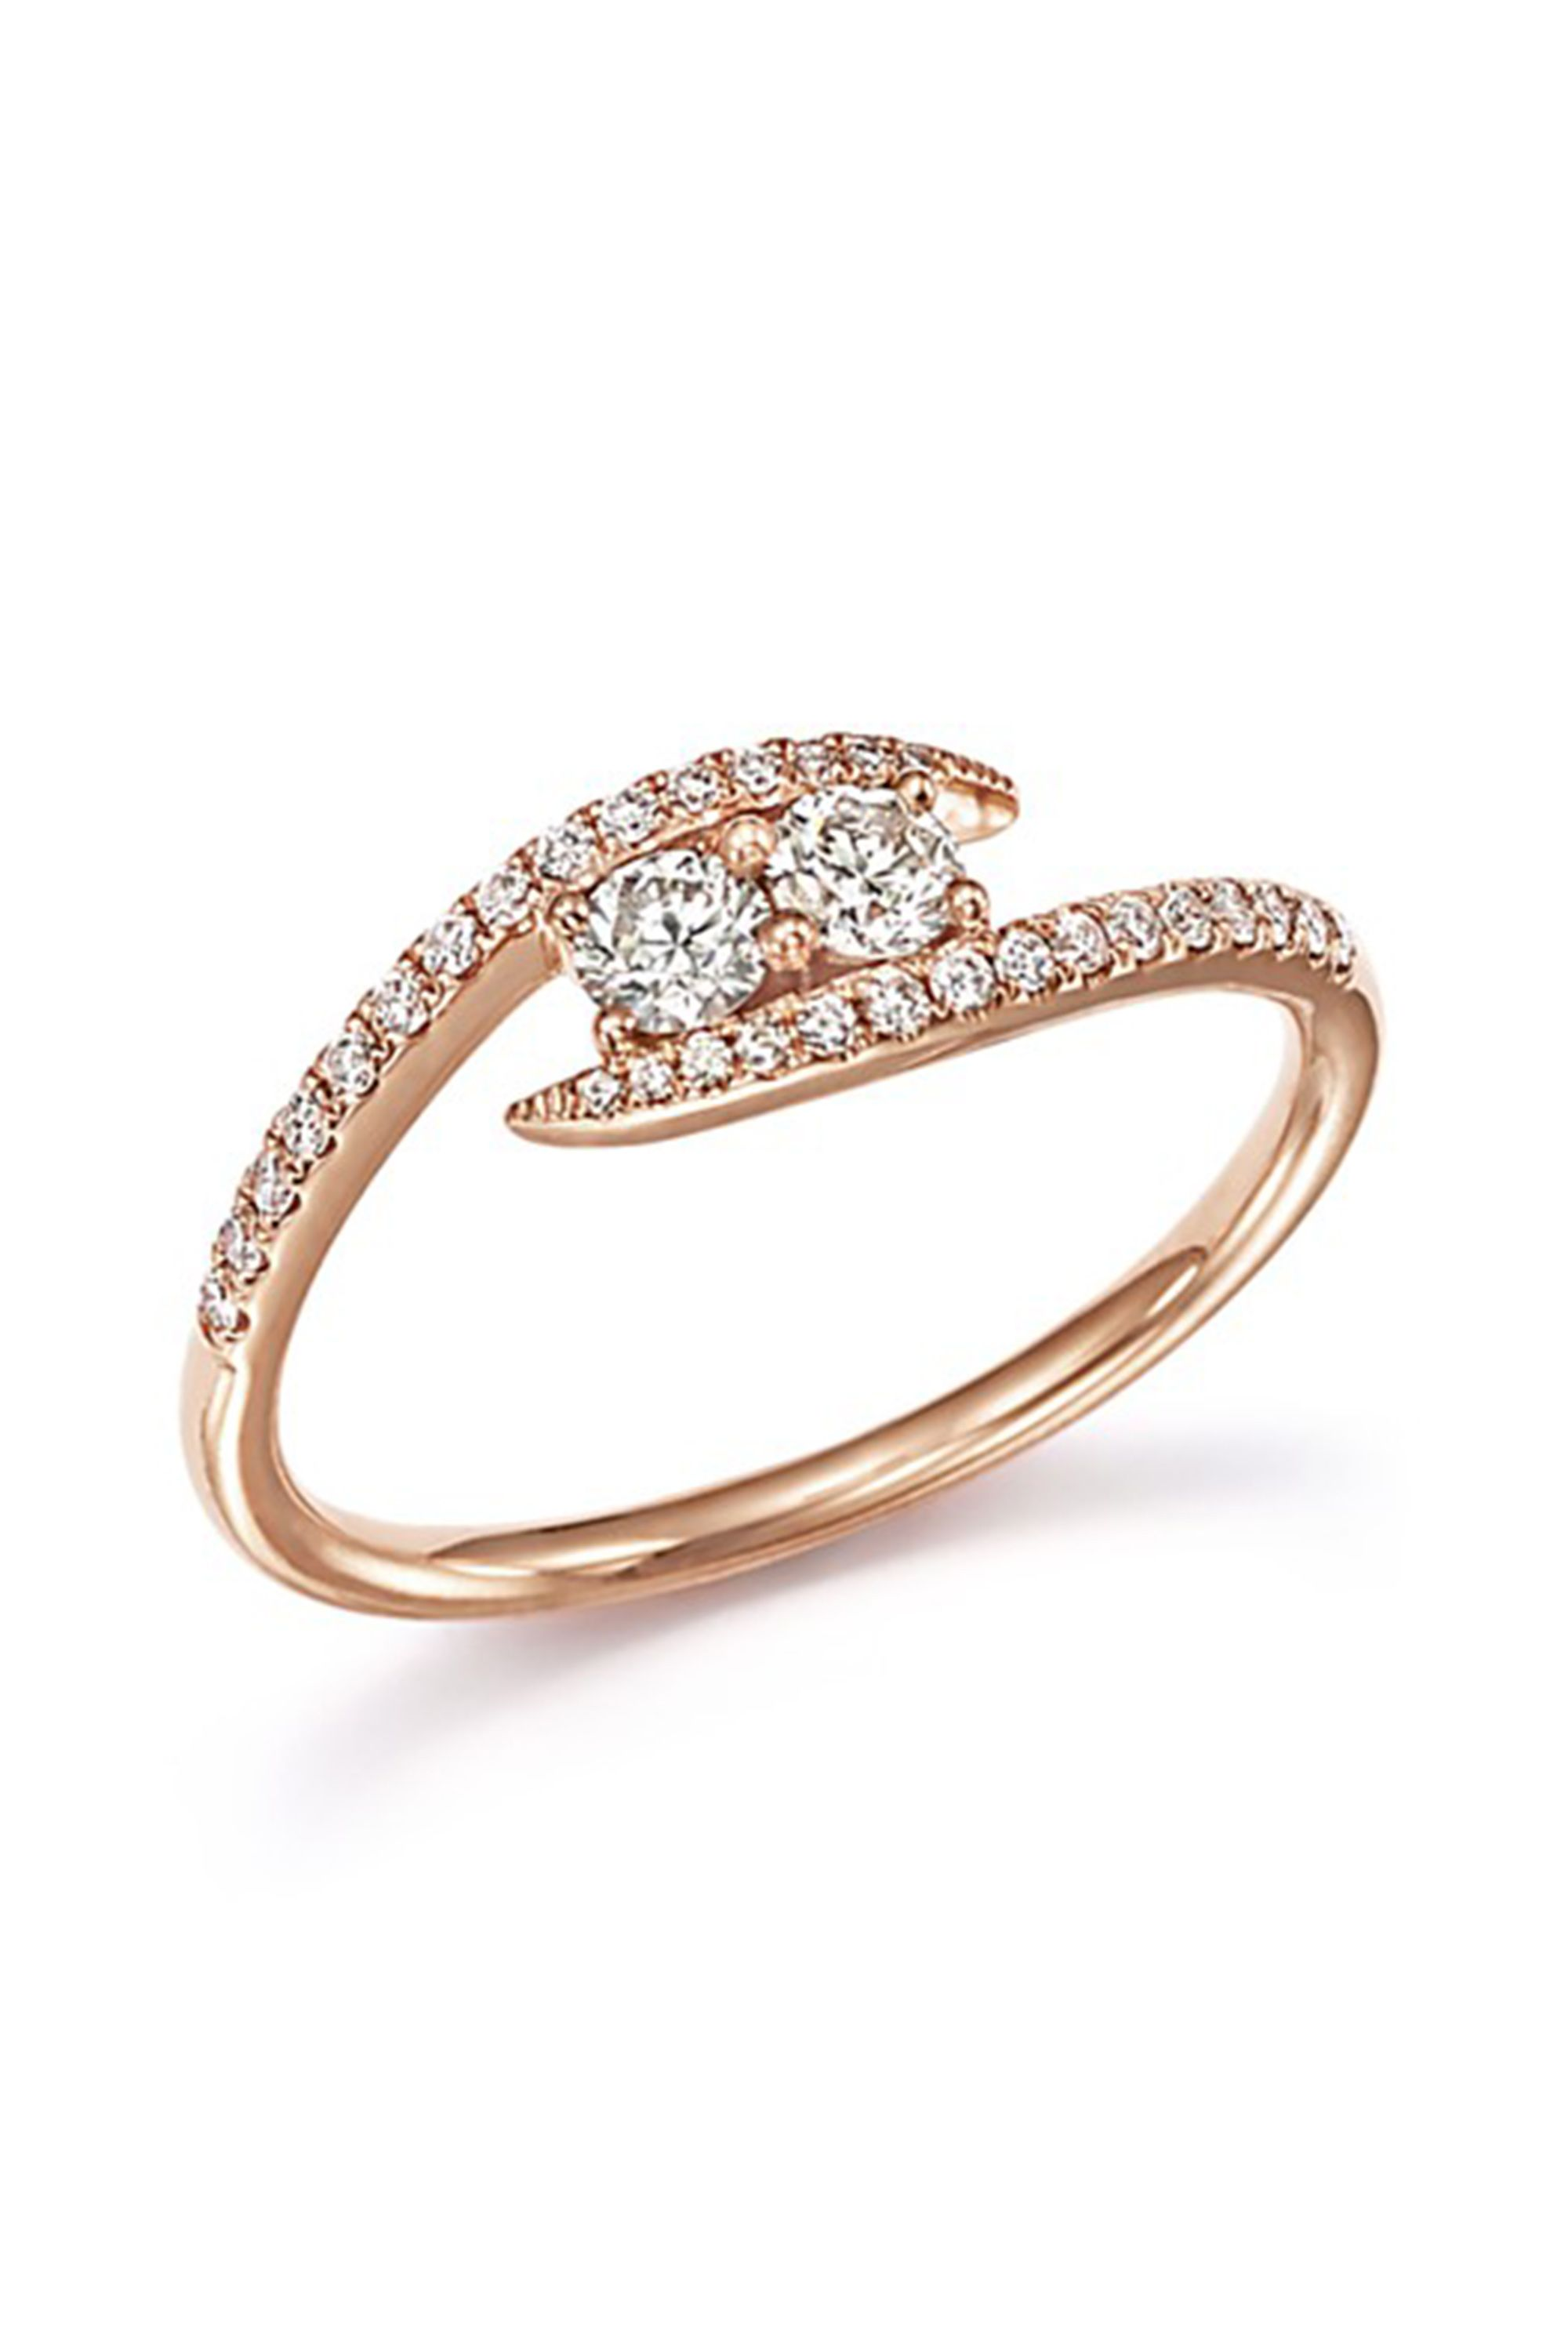 "<p>Diamond Wrap Two Stone Ring, $1,400; <a href=""http://www1.bloomingdales.com/shop/product/diamond-wrap-two-stone-ring-in-14k-rose-gold-.40-ct.-t.w.?ID=1657198&PartnerID=LINKSHARE&cm_mmc=LINKSHARE-_-n-_-n-_-n&PartnerID=LINKSHARE&LinkshareID=J84DHJLQkR4-Frljua60dsfzN9ceT7zivA&ranPublisherID=J84DHJLQkR4&ranLinkID=753273214123&ranLinkTypeID=15"" target=""_blank"">bloomingdales.com</a></p>"